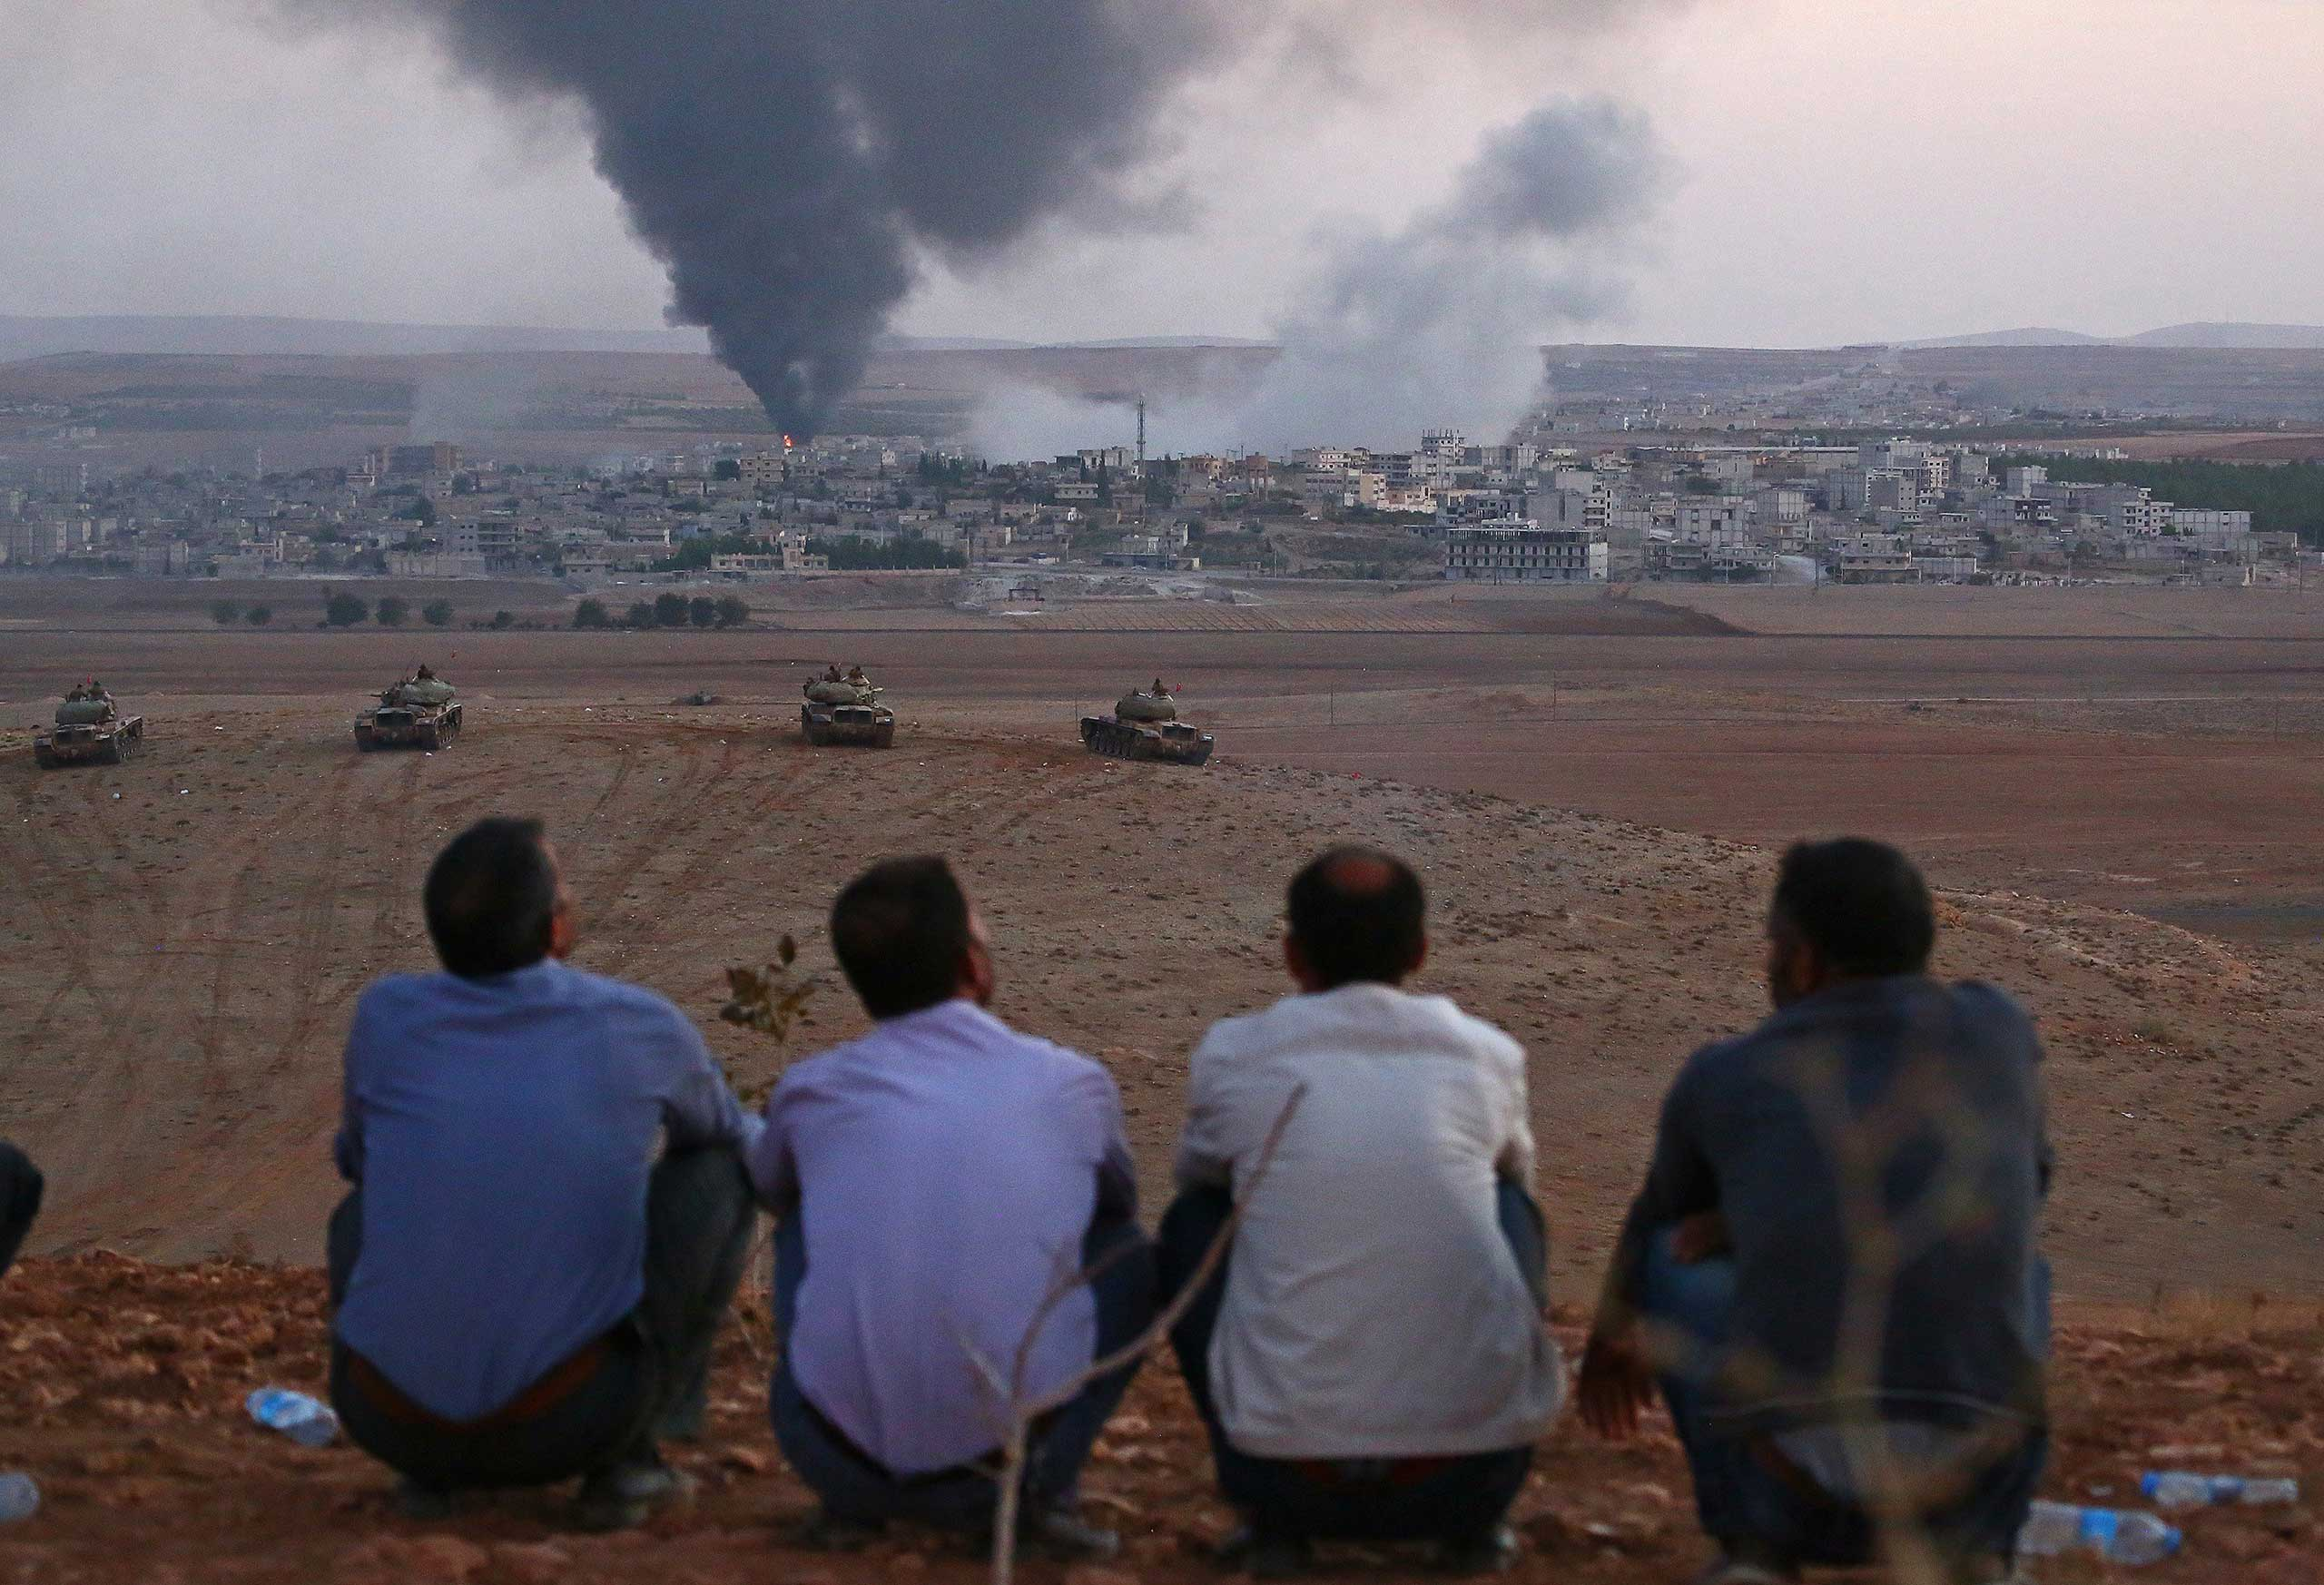 Local Turkish residents watch the smoke rising from Syria's Ayn al-Arab city (Kurdish city of Kobani) after clashes between the Islamic State of Iraq and the Levant (ISIS) and Kurdish armed groups in Kobani on Oct. 9, 2014.